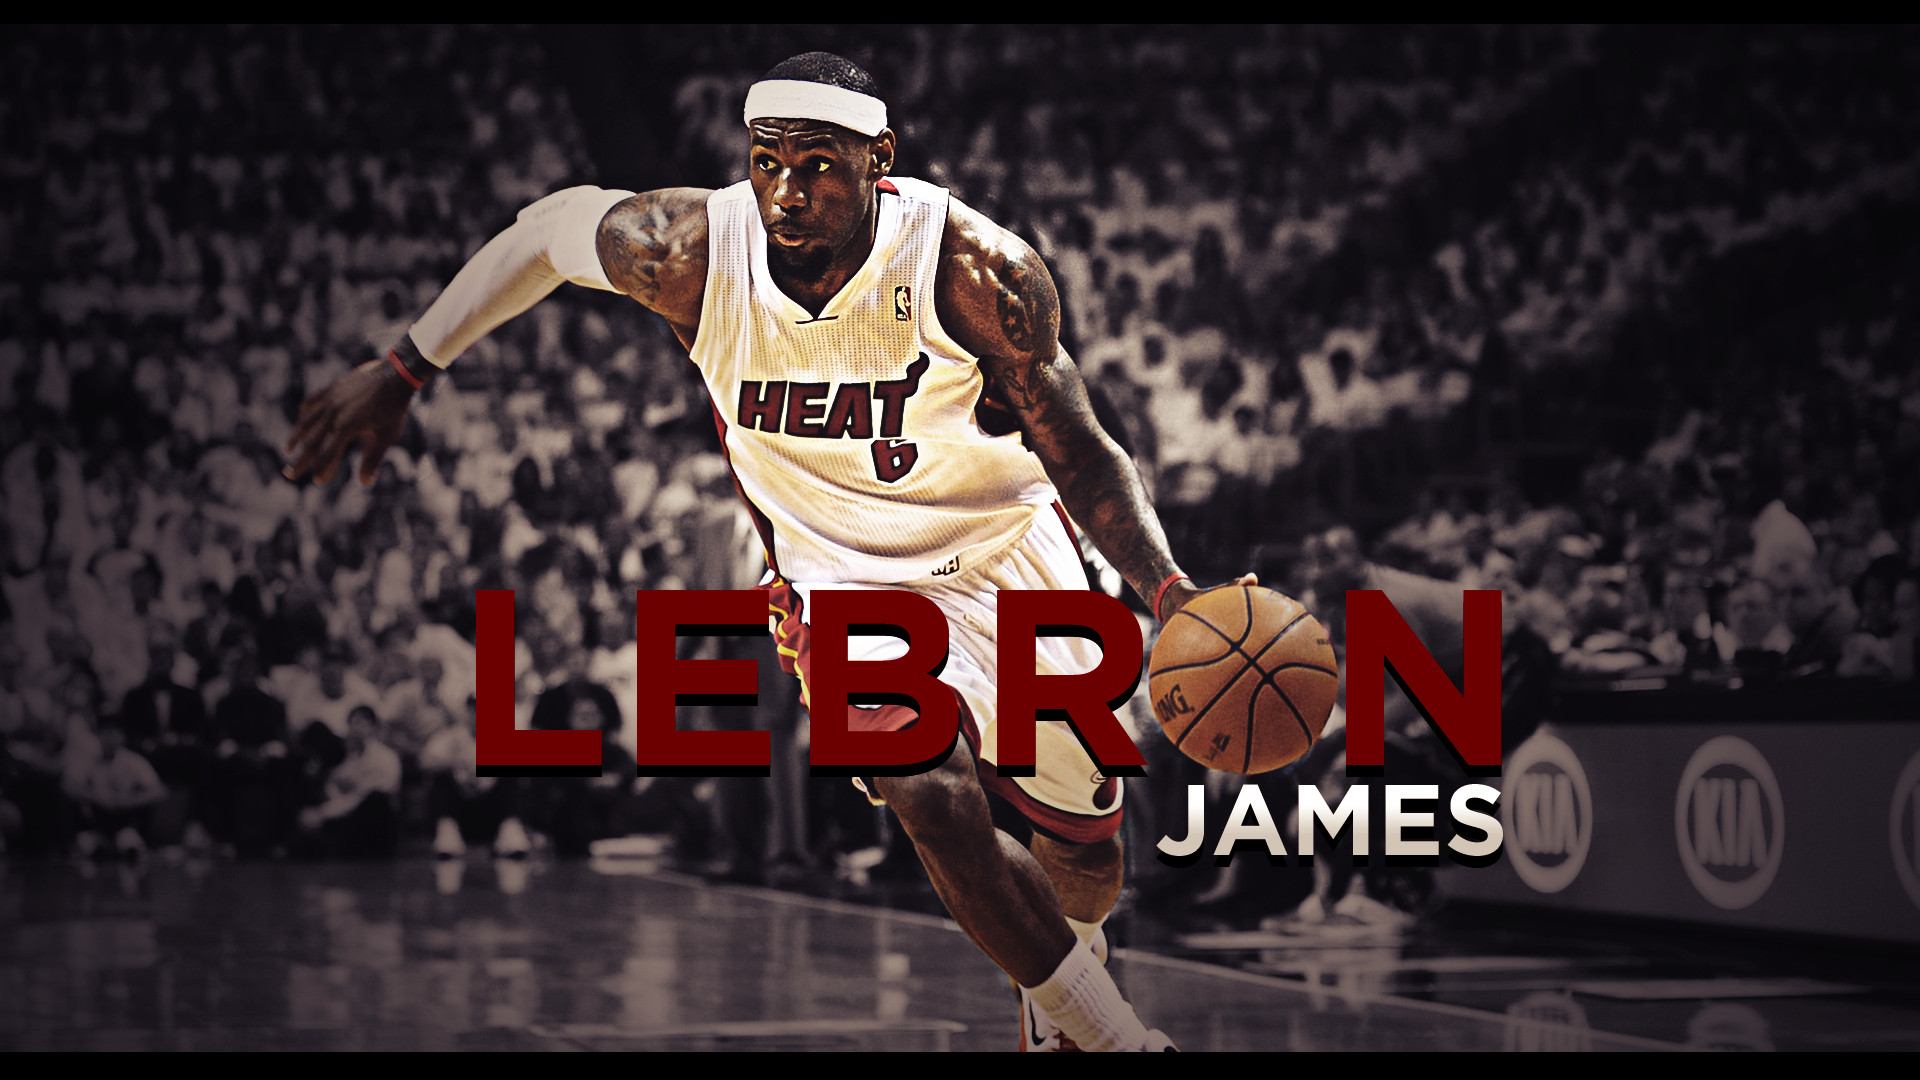 fonds d'écran lebron james : tous les wallpapers lebron james